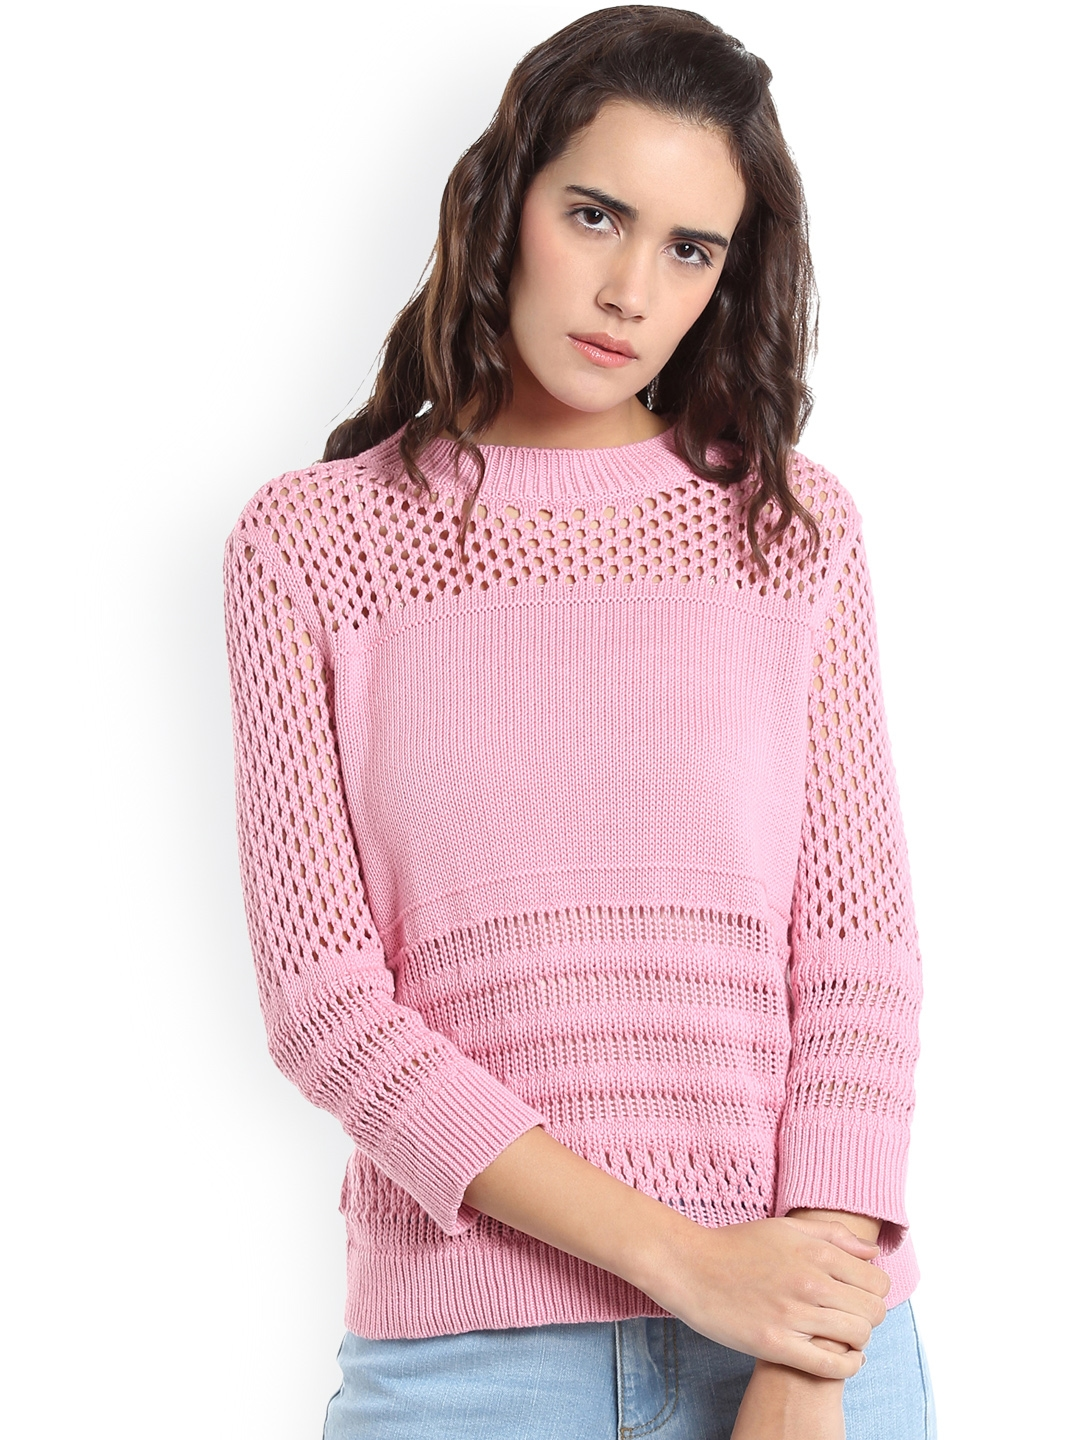 c554794f663 Buy Vero Moda Women Pink Self Design Sweater Vest - Sweaters for ...